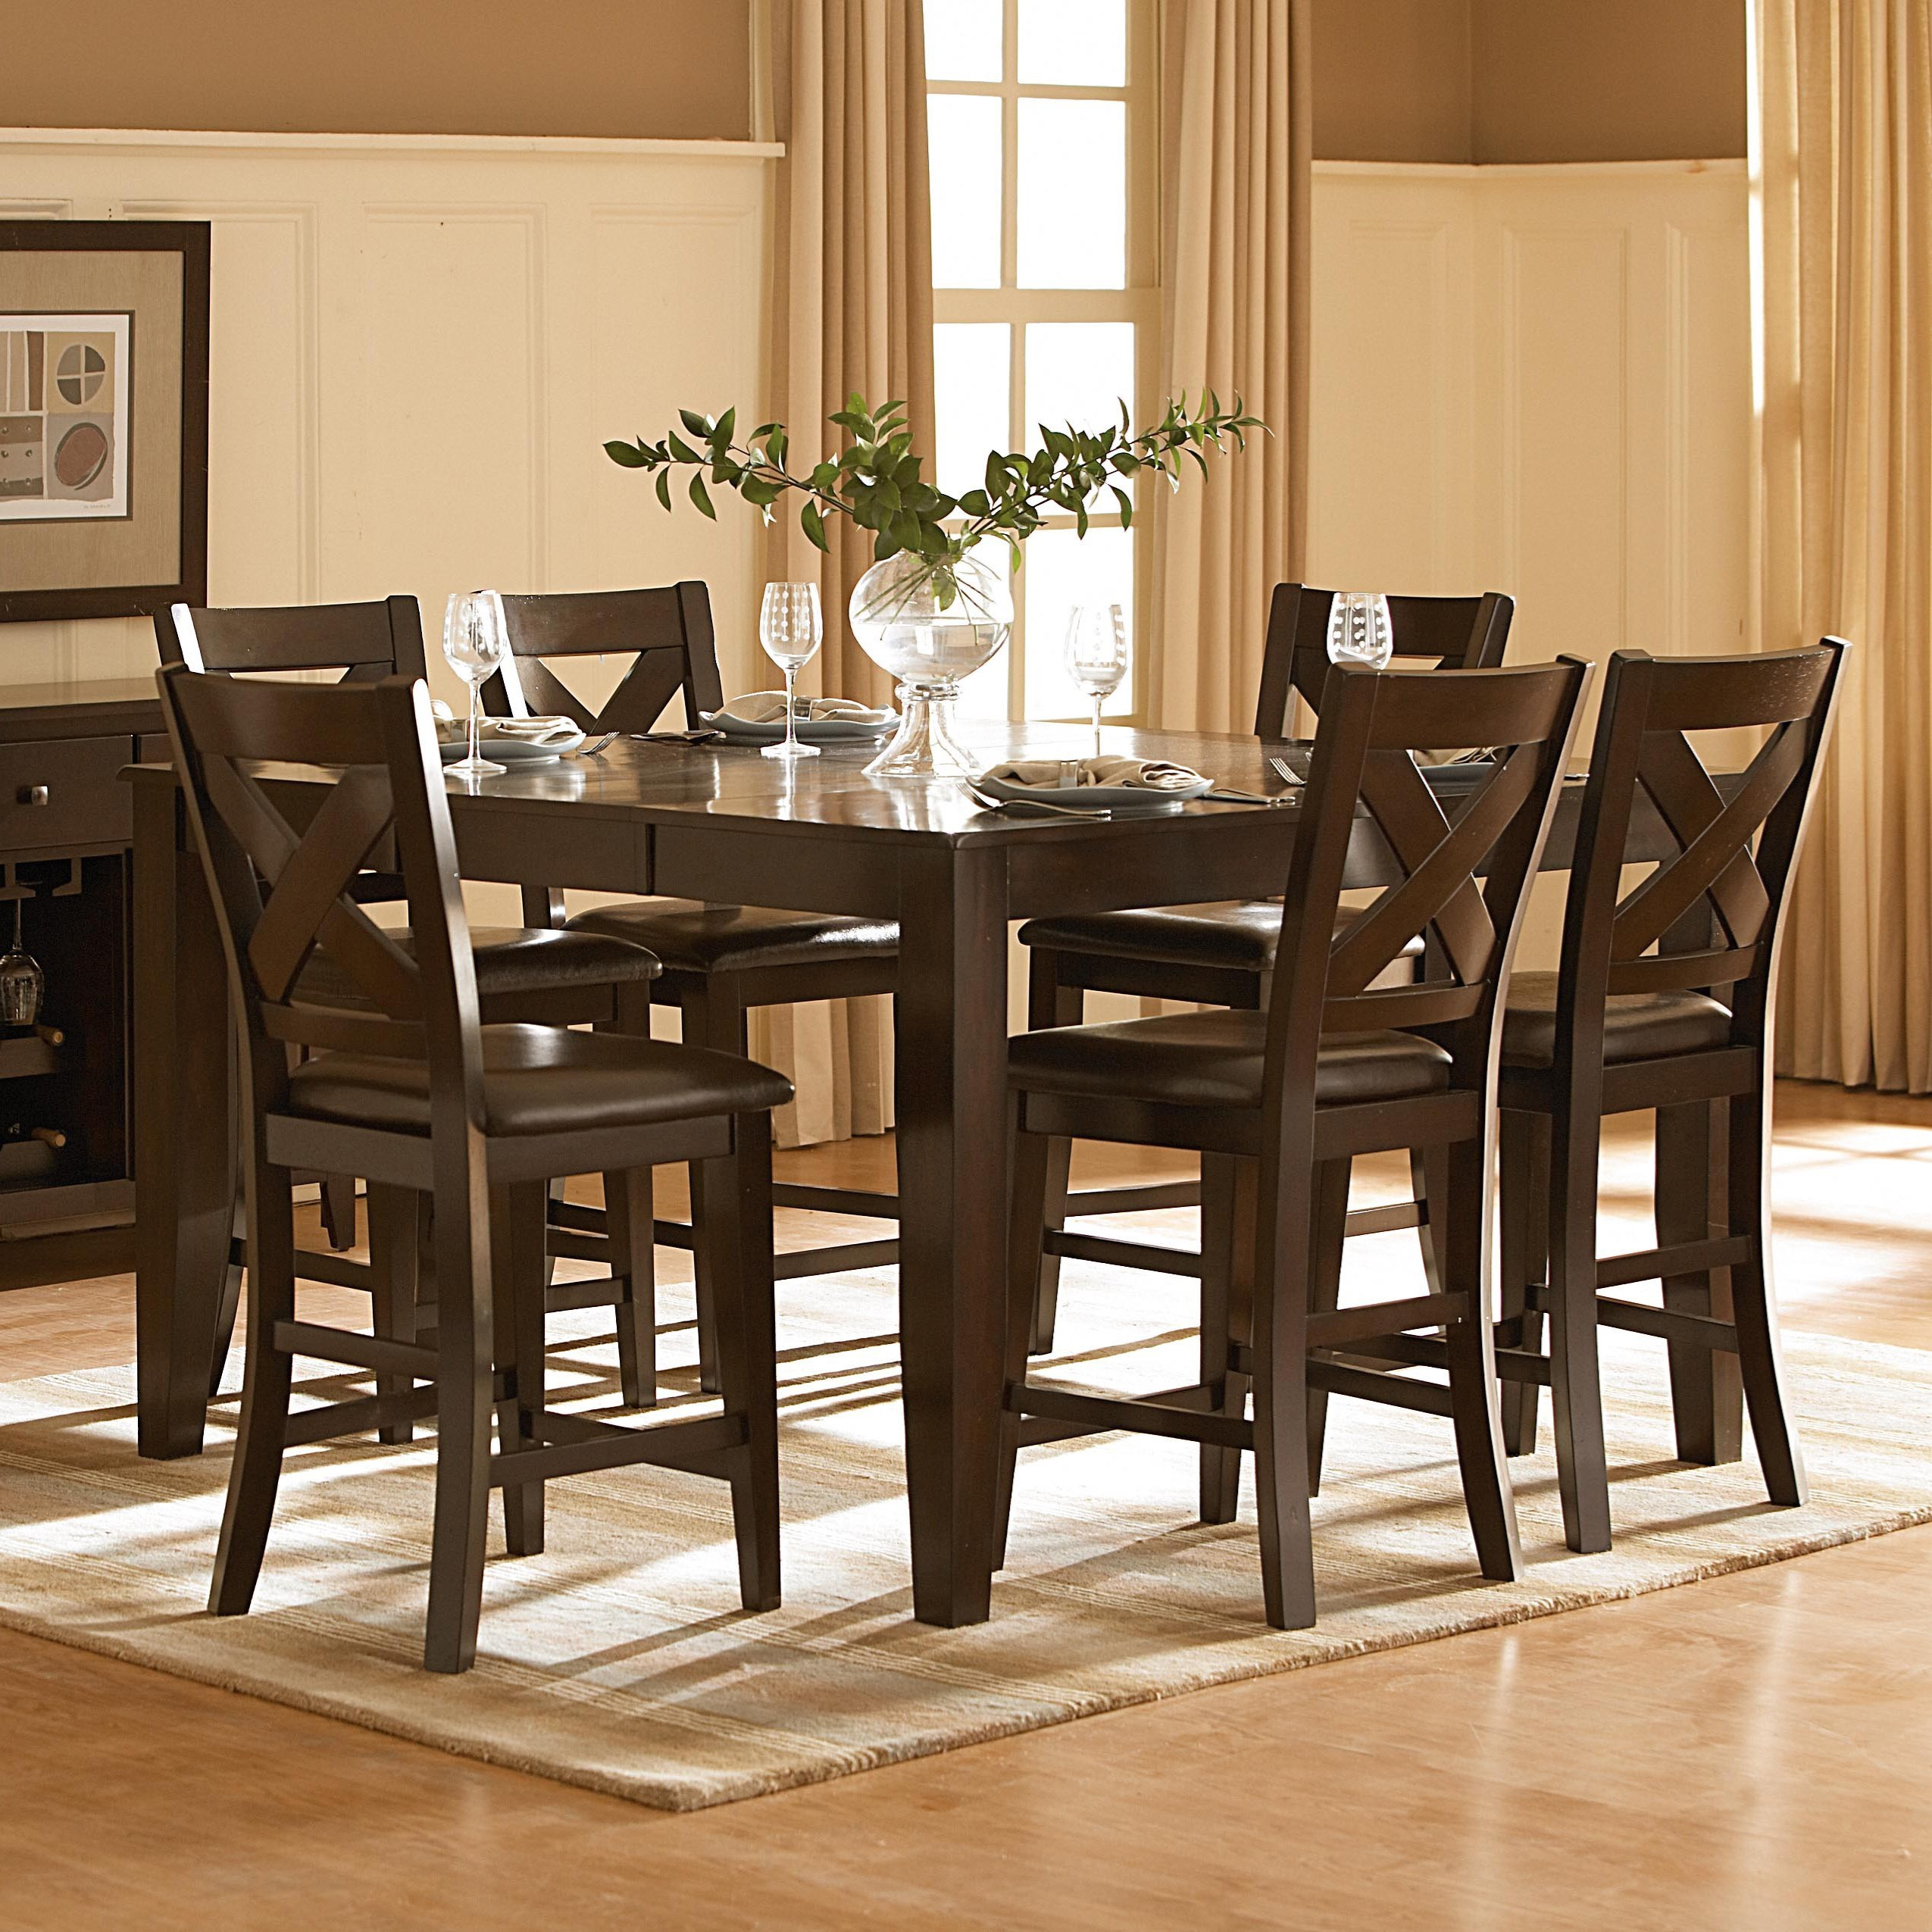 Pub Table and Counter Height Chair Set